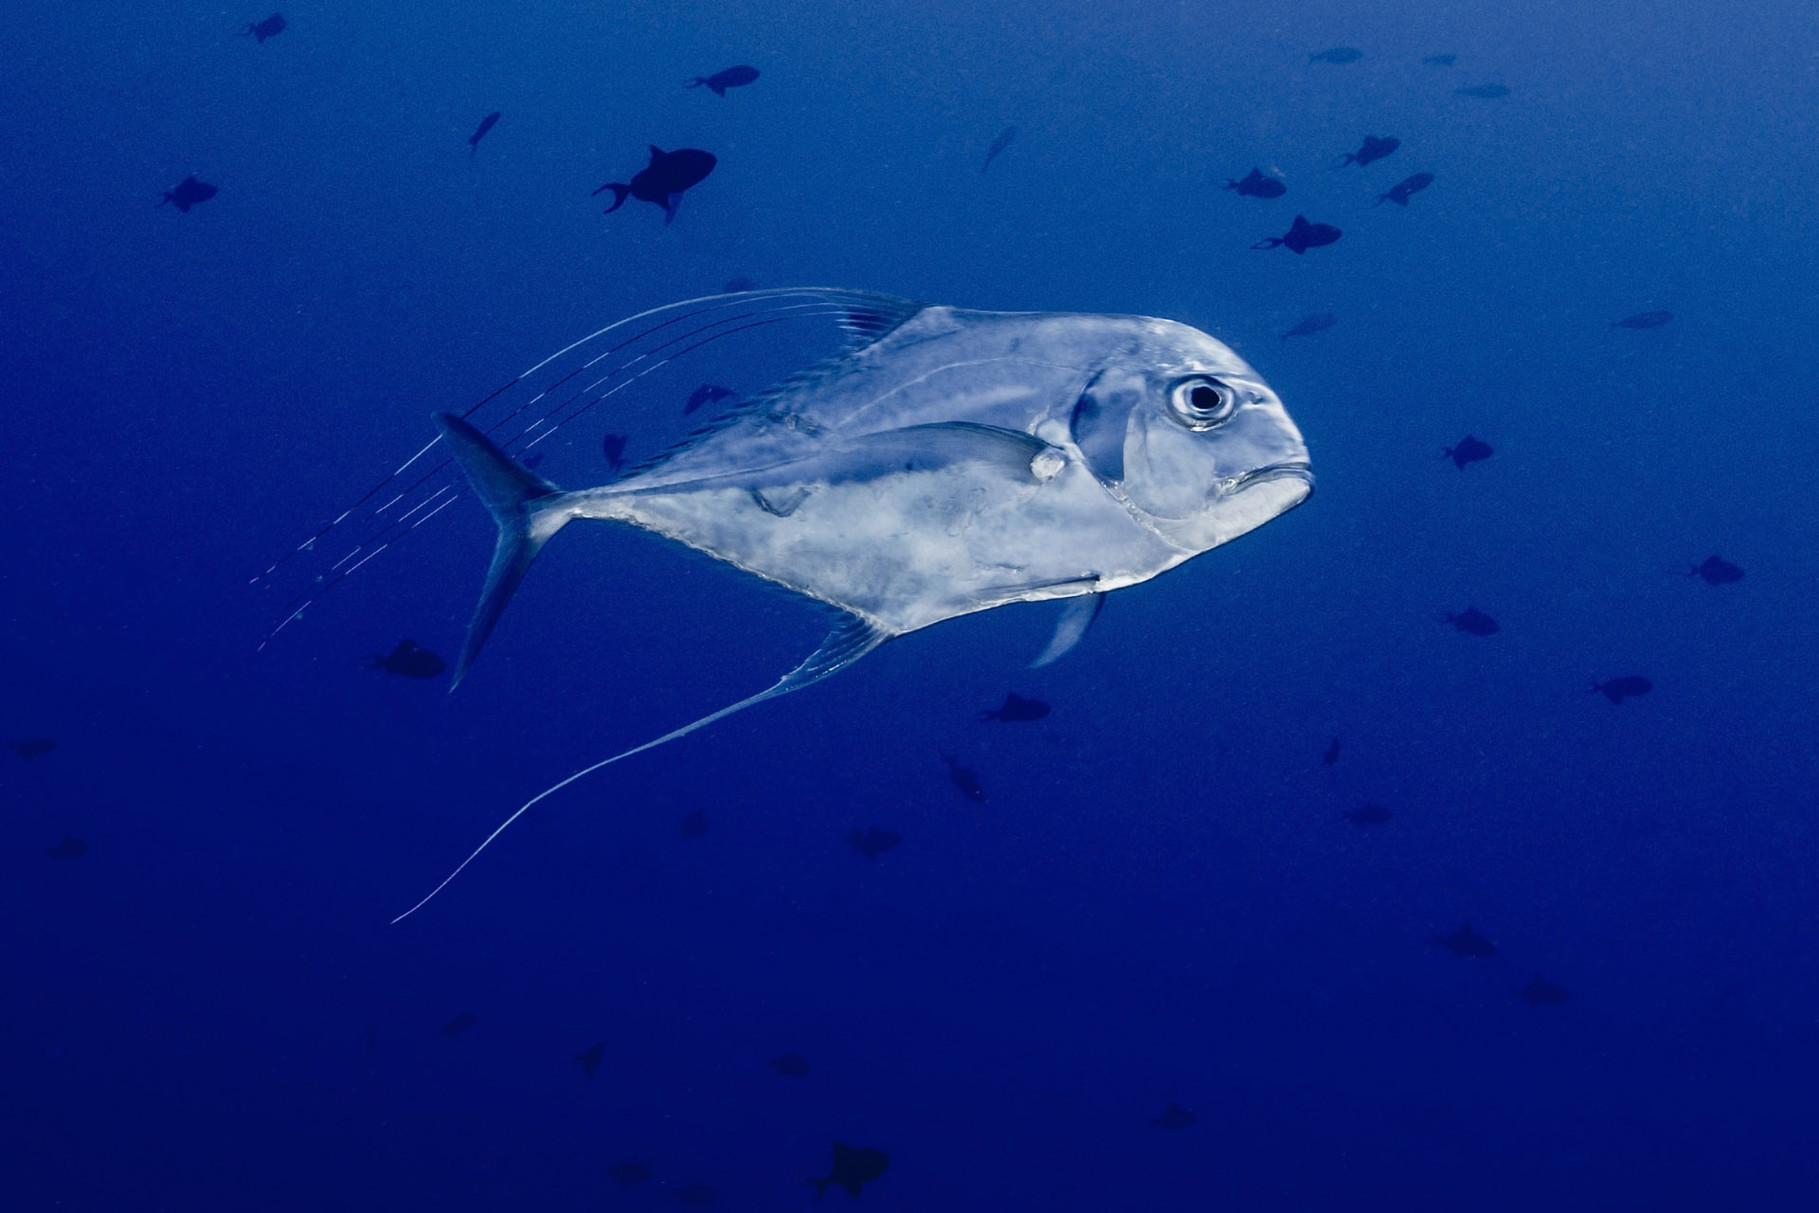 African pompano (Alectis ciliaris, also known as the pennant-fish and threadfin trevally), Avatoru Pass, Rangiroa